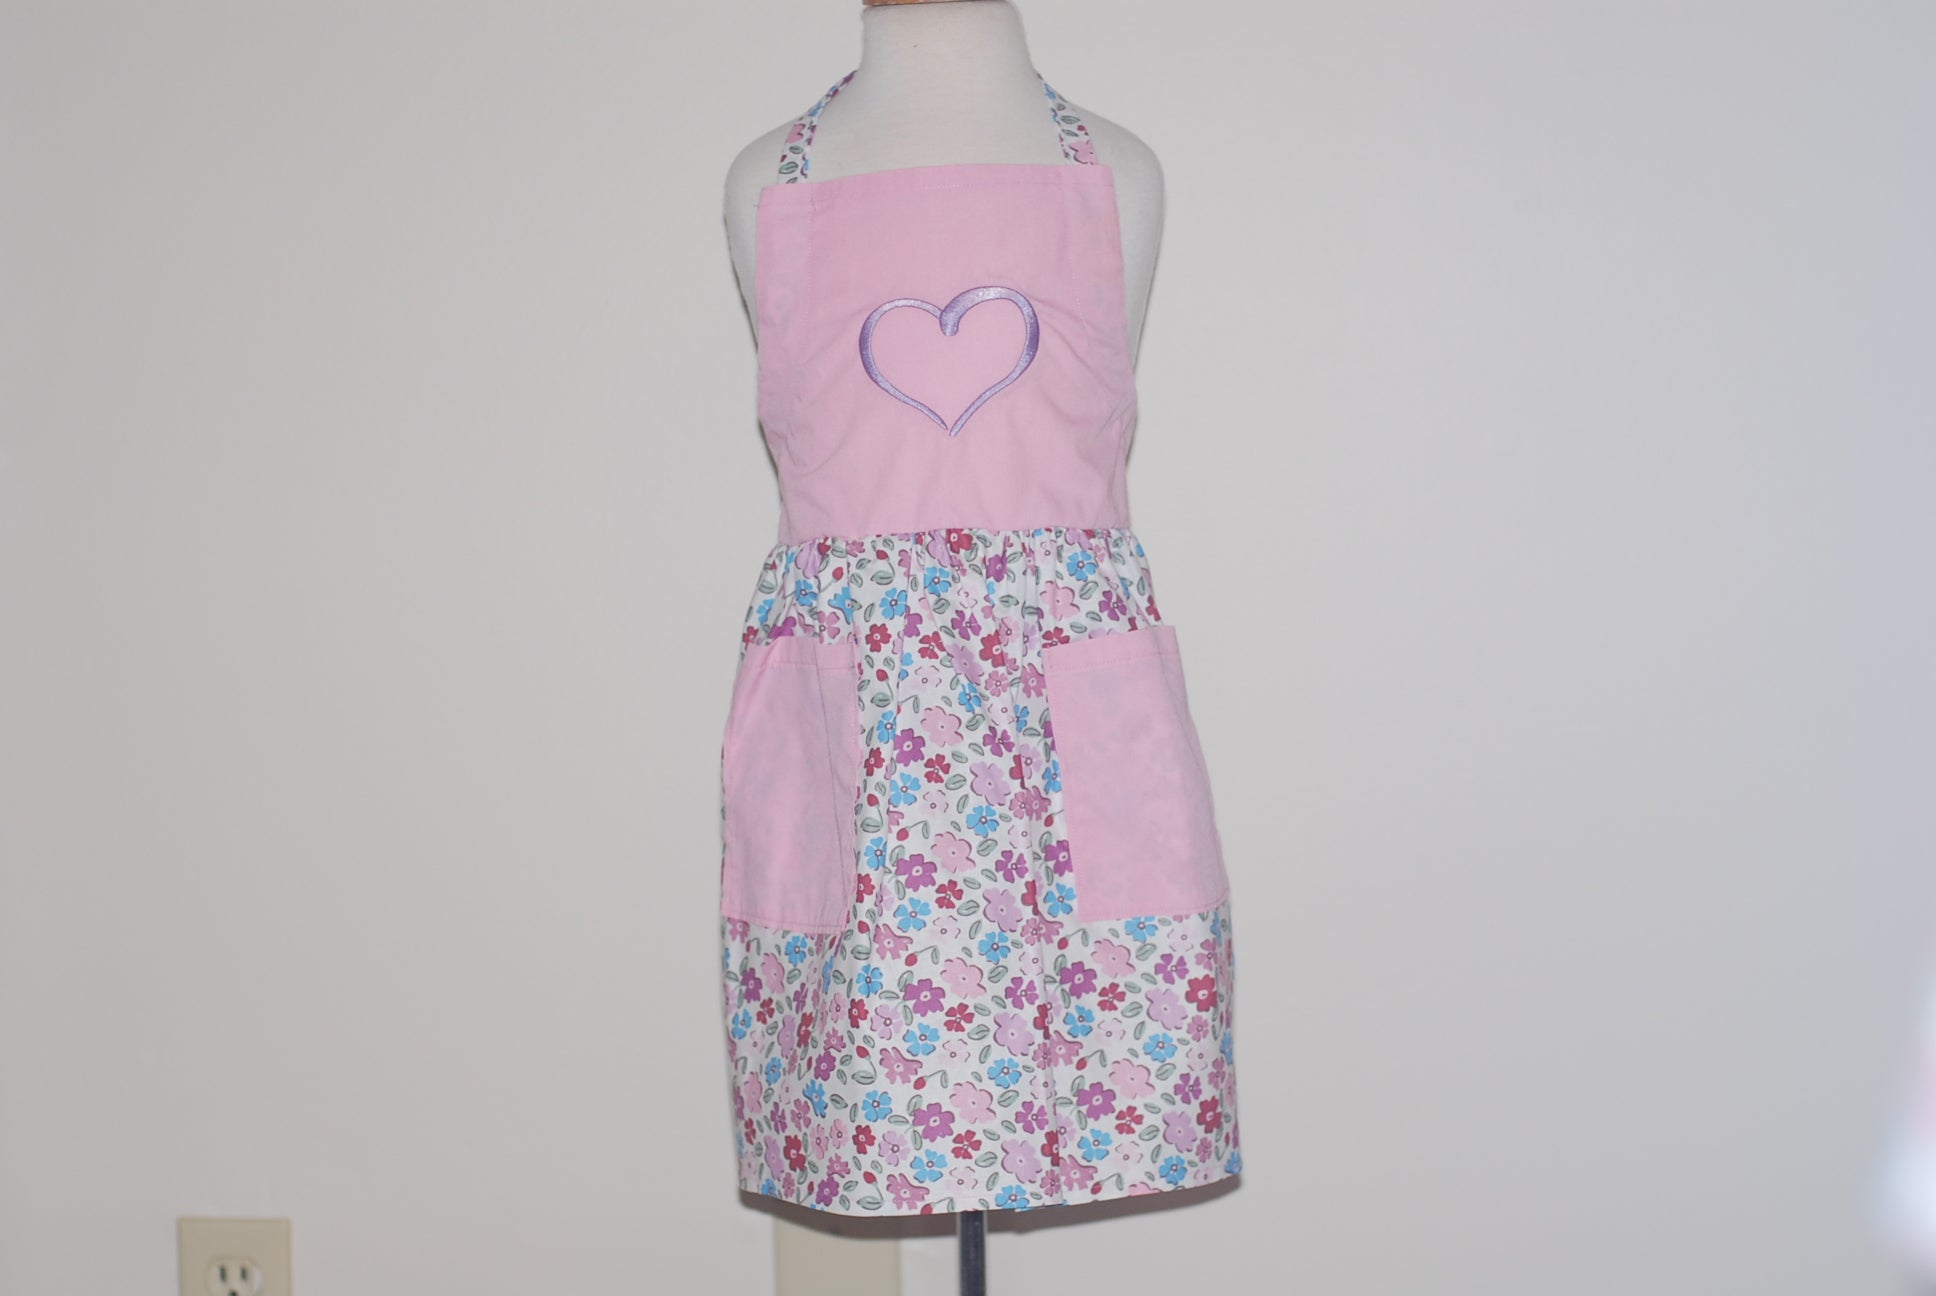 Multicolored flowers on a white skirt with a lavender heart